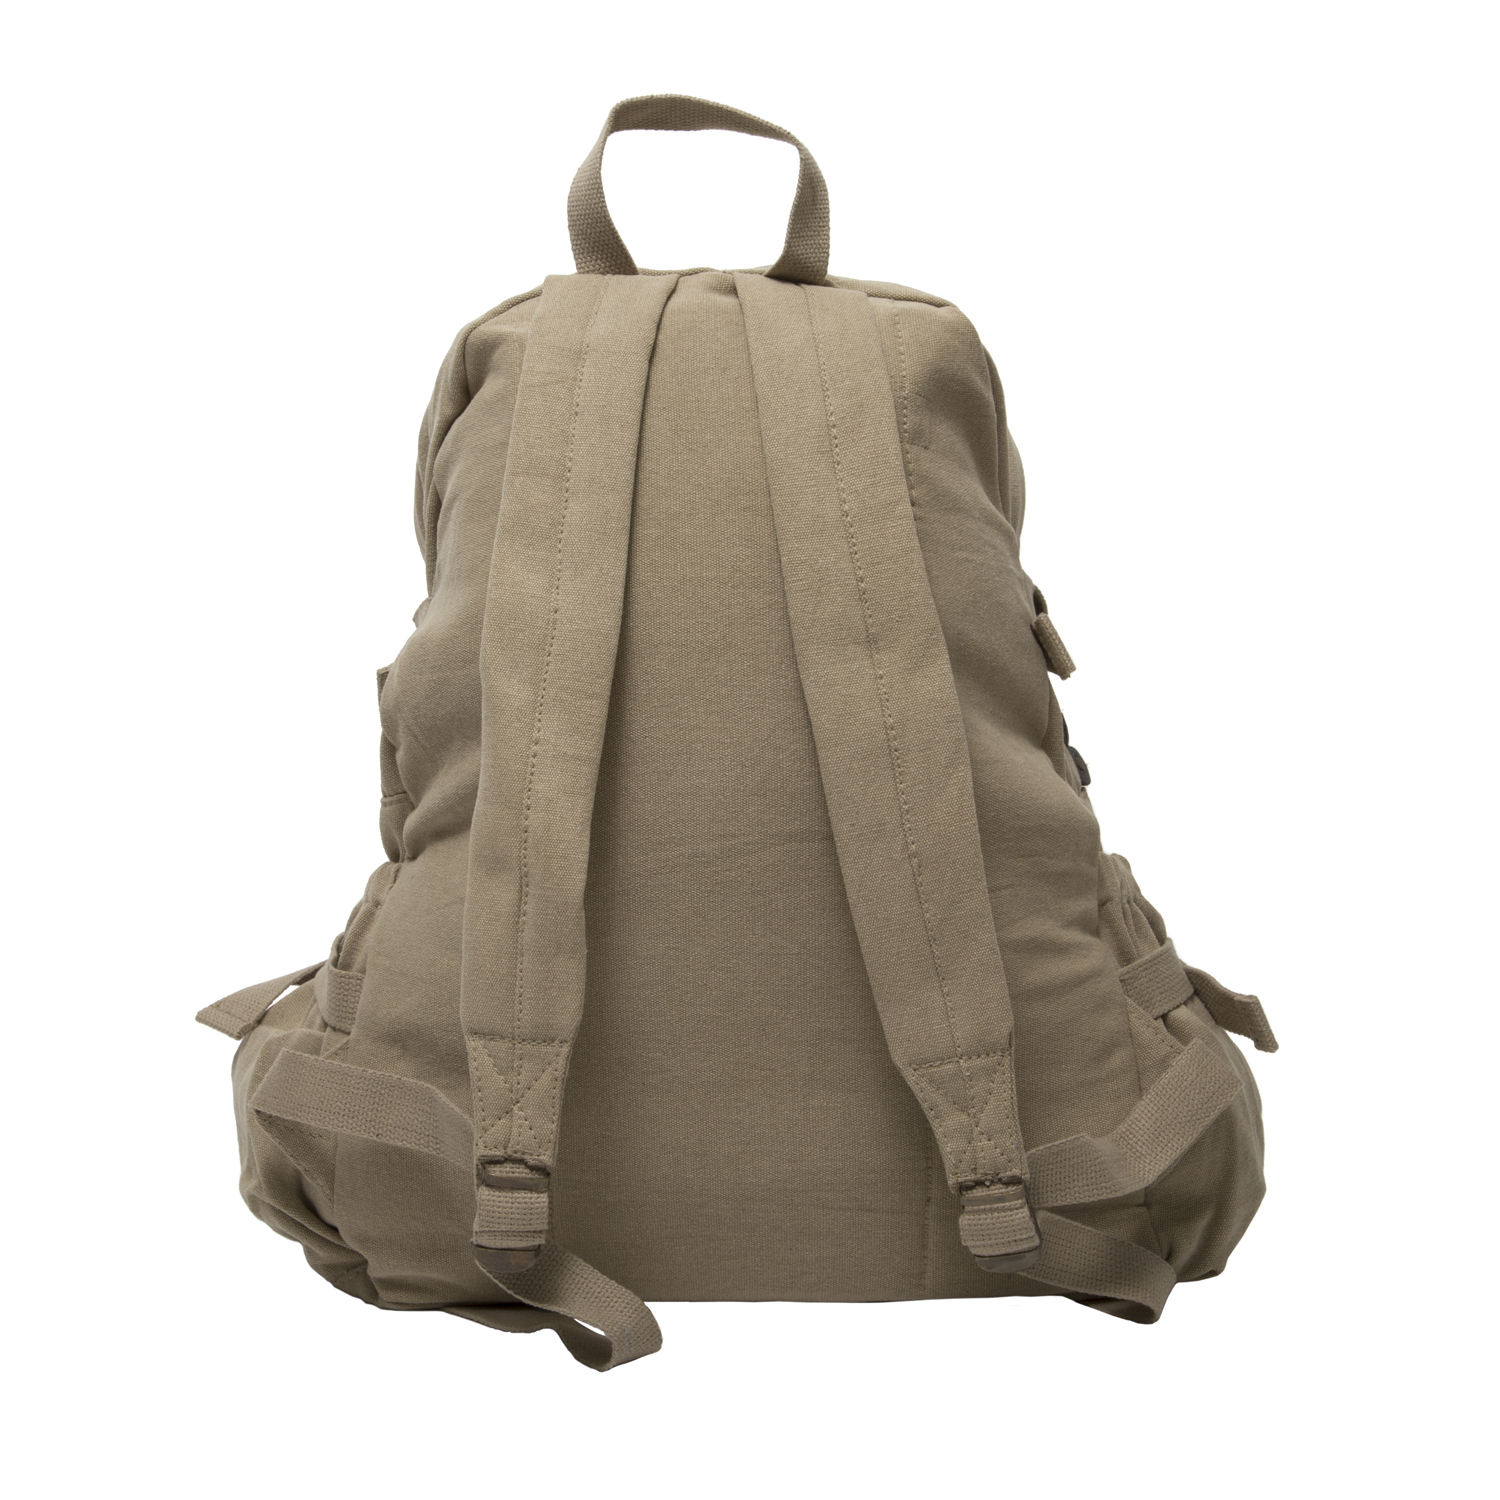 army force gear biohazard symbol canvas military backpack travel